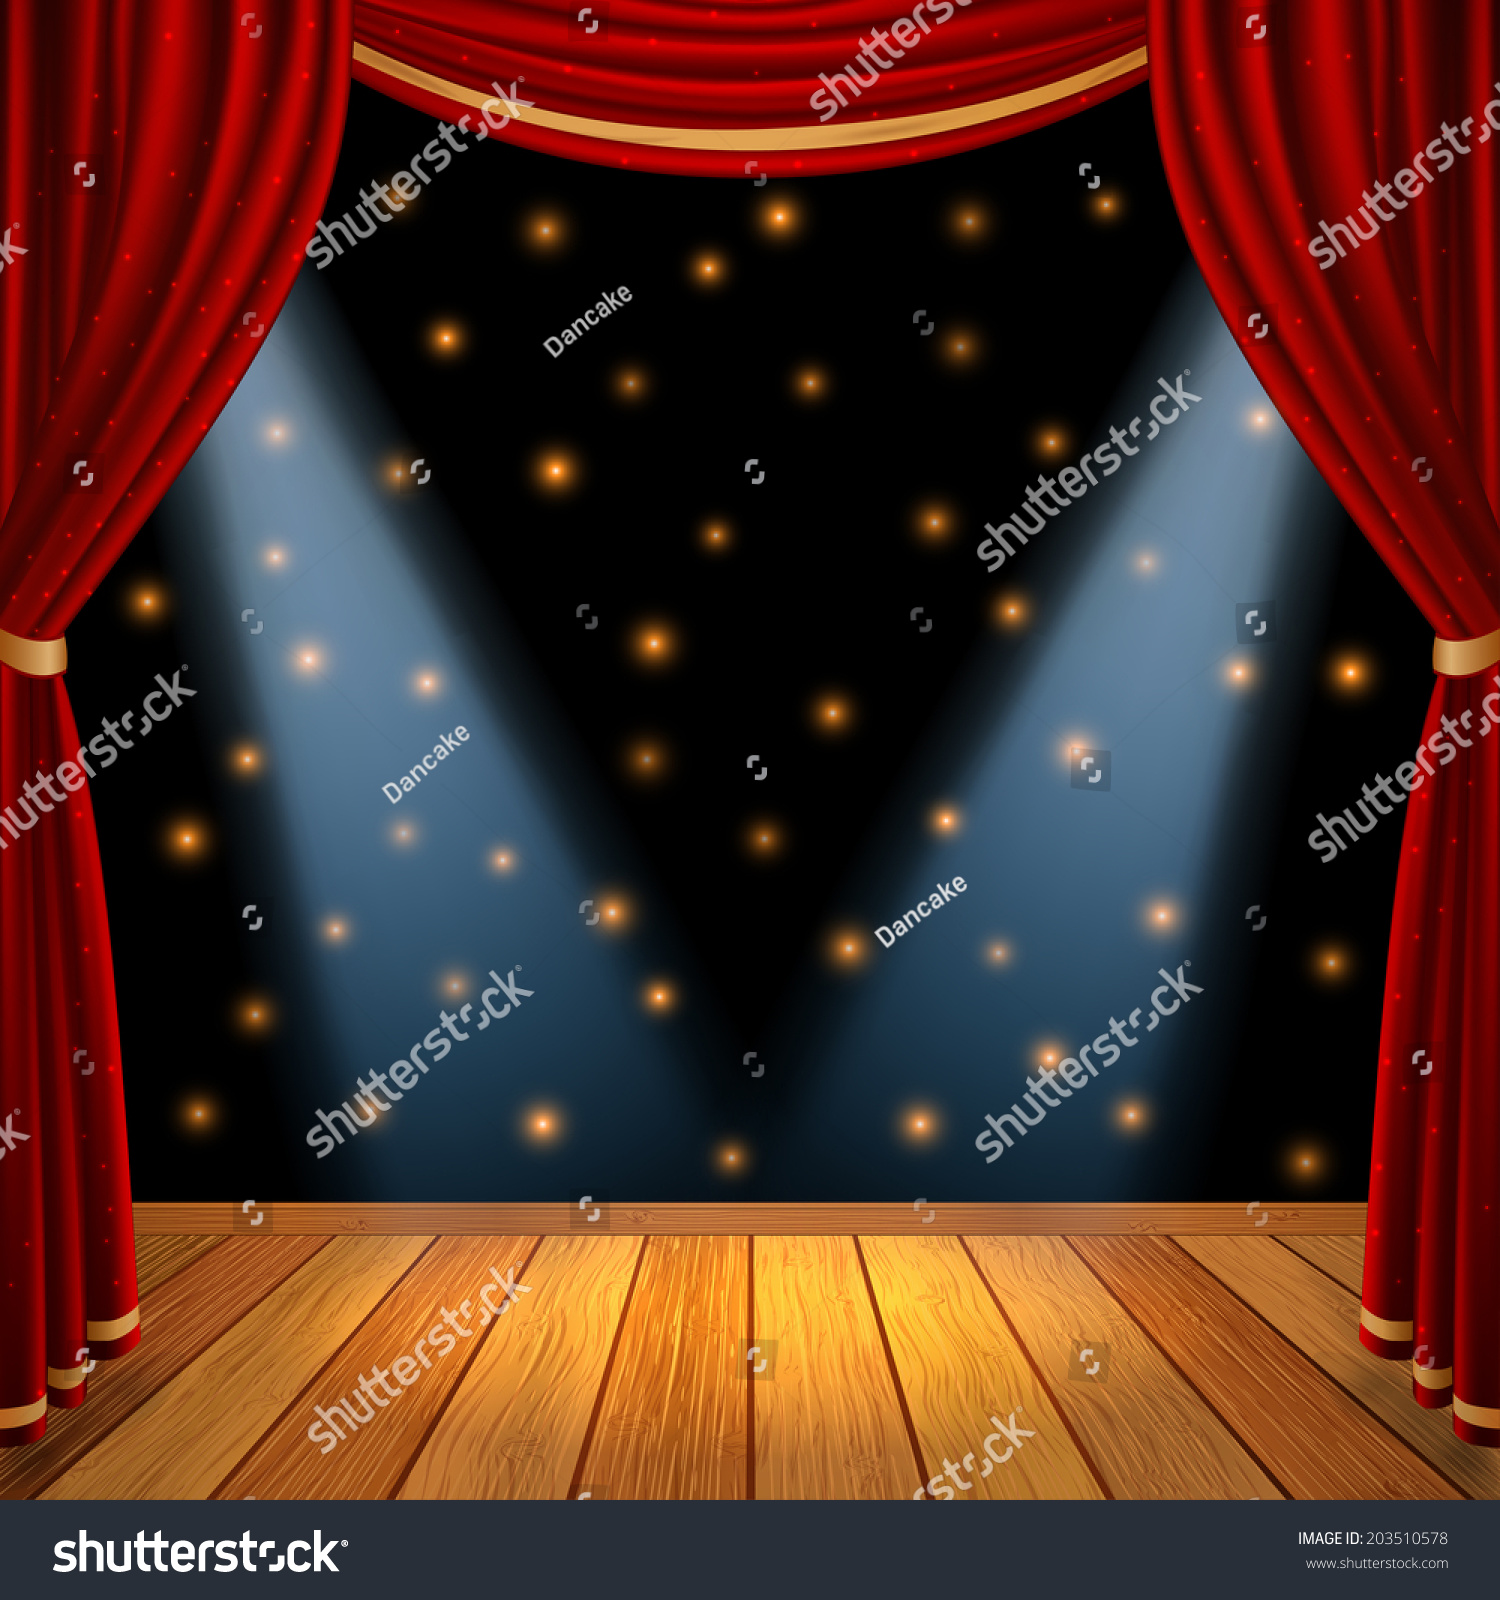 Stage curtains spotlight - Empty Theatrical Scene Stage With Red Curtains Drapes And Brown Wooden Floor With Dramatic Spotlight In